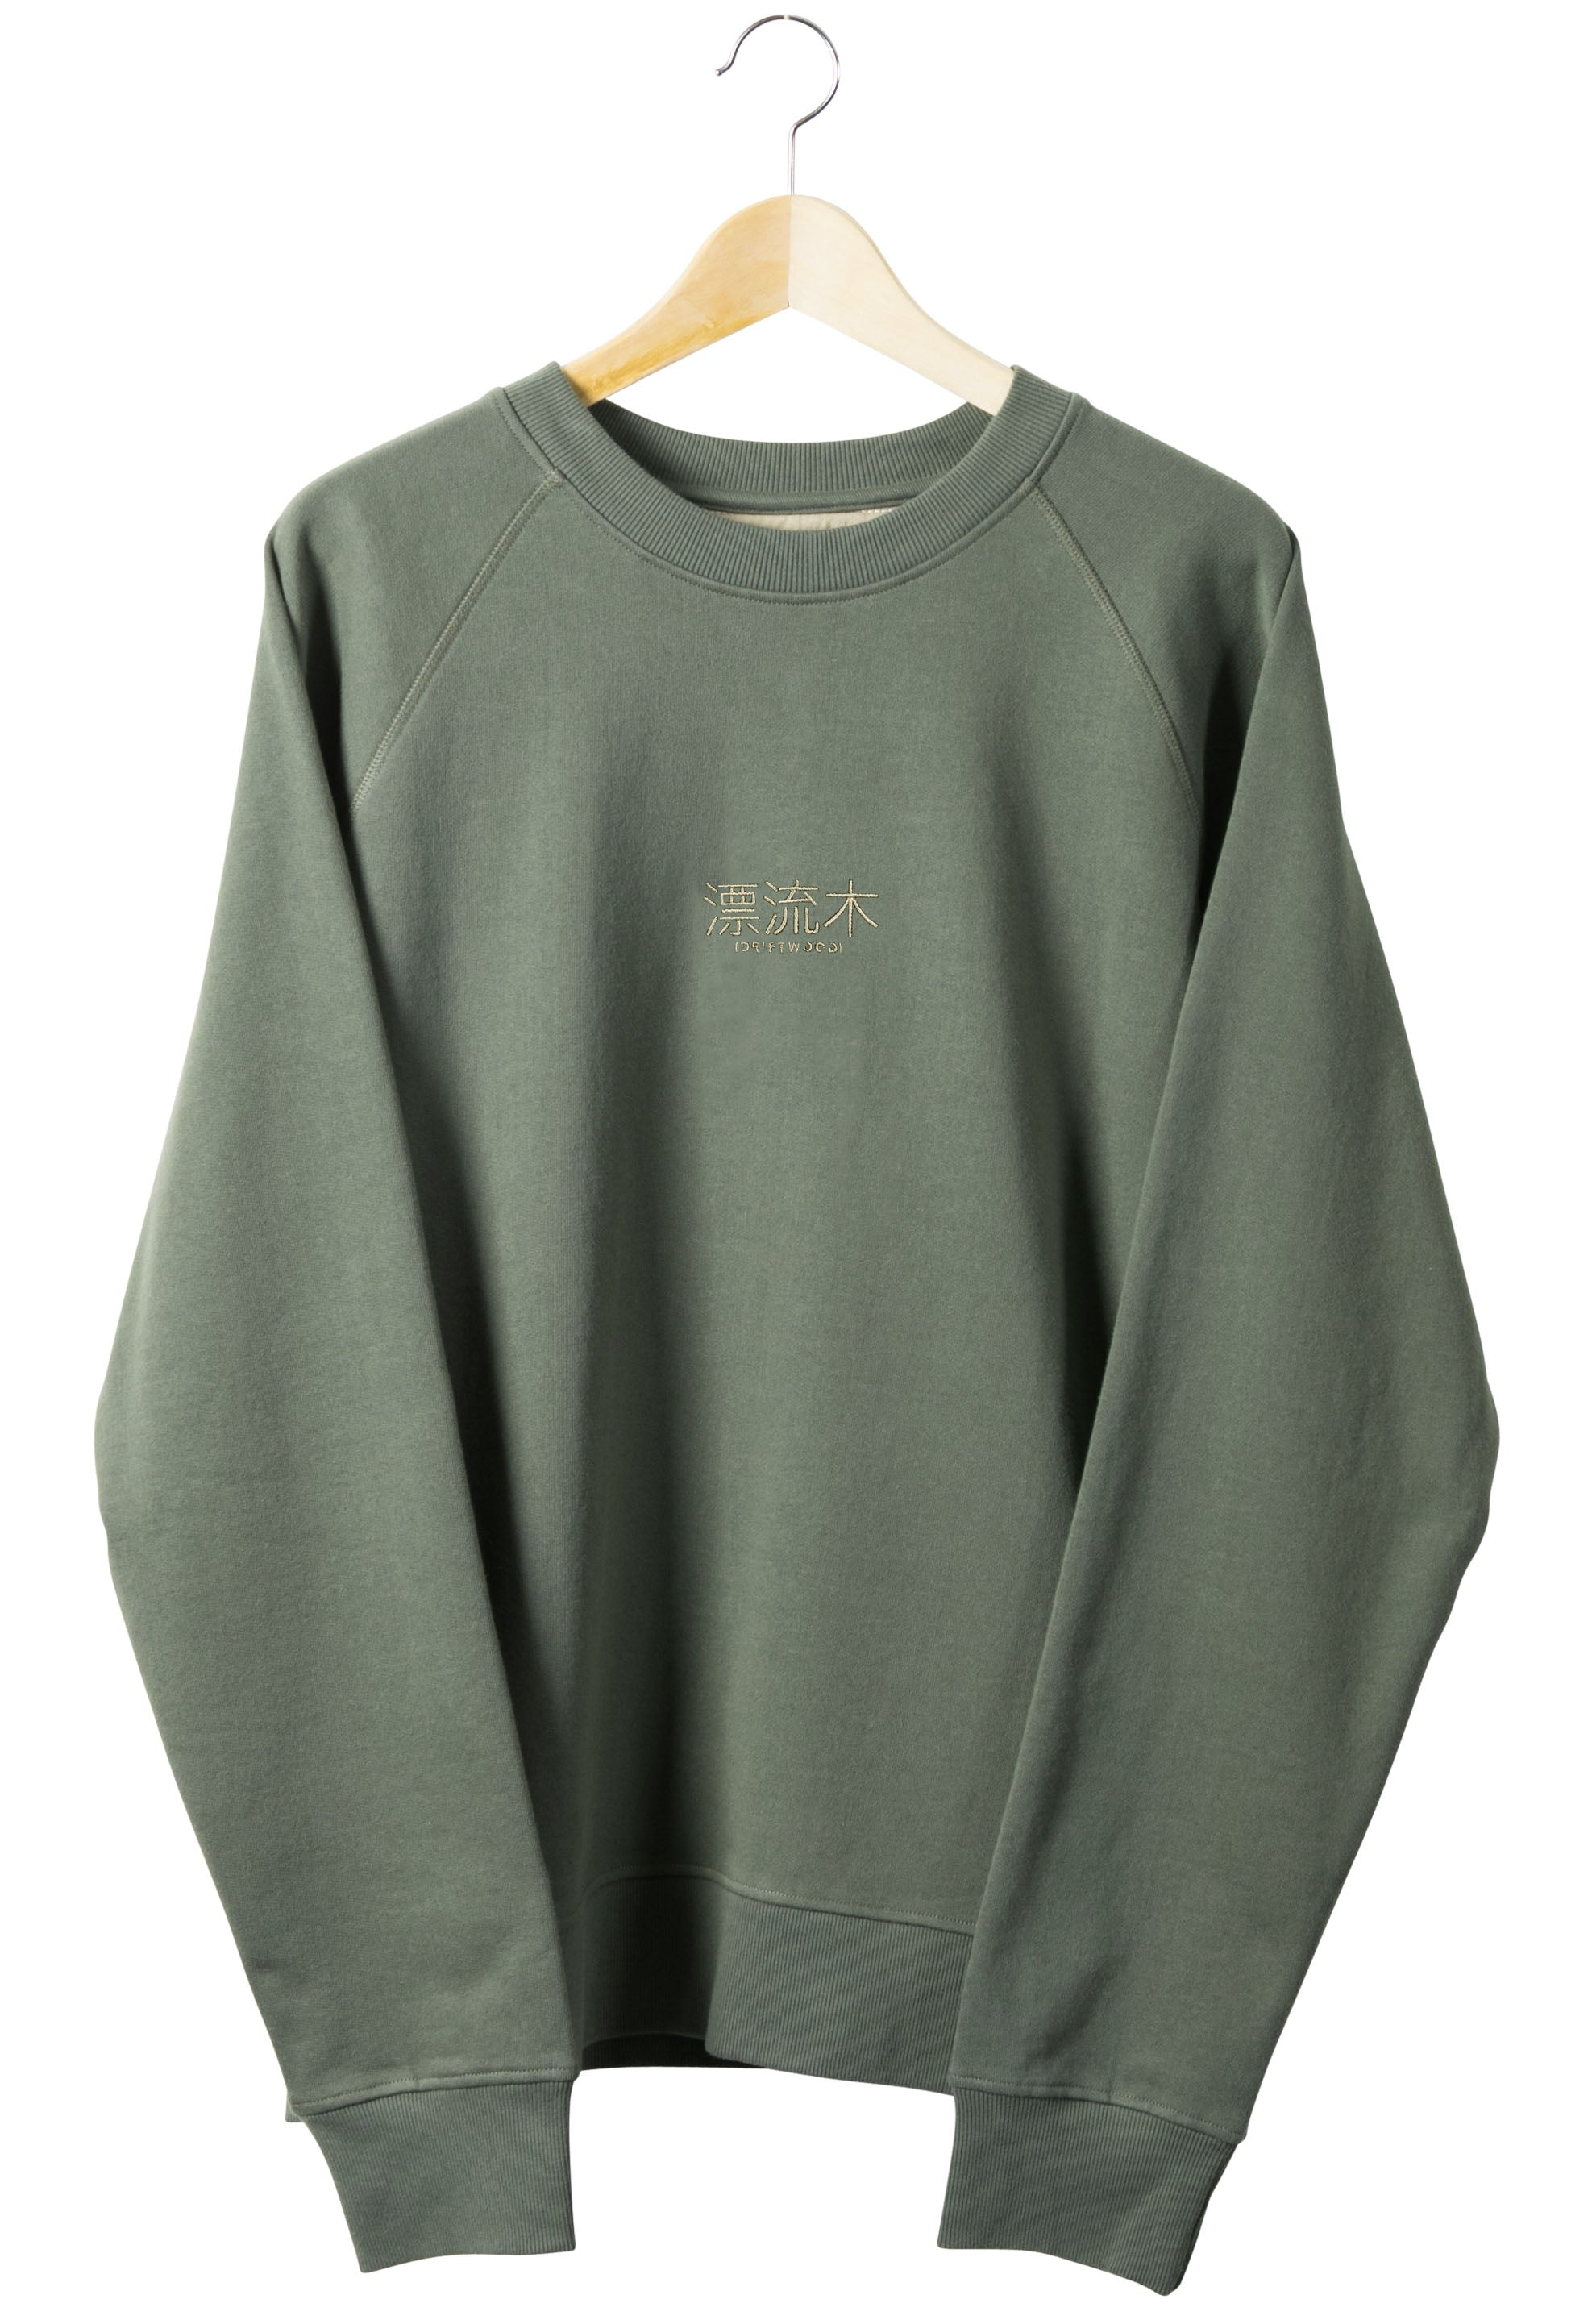 SWEAT - JAPANESE DRIFTWOOD - ARMY GREEN